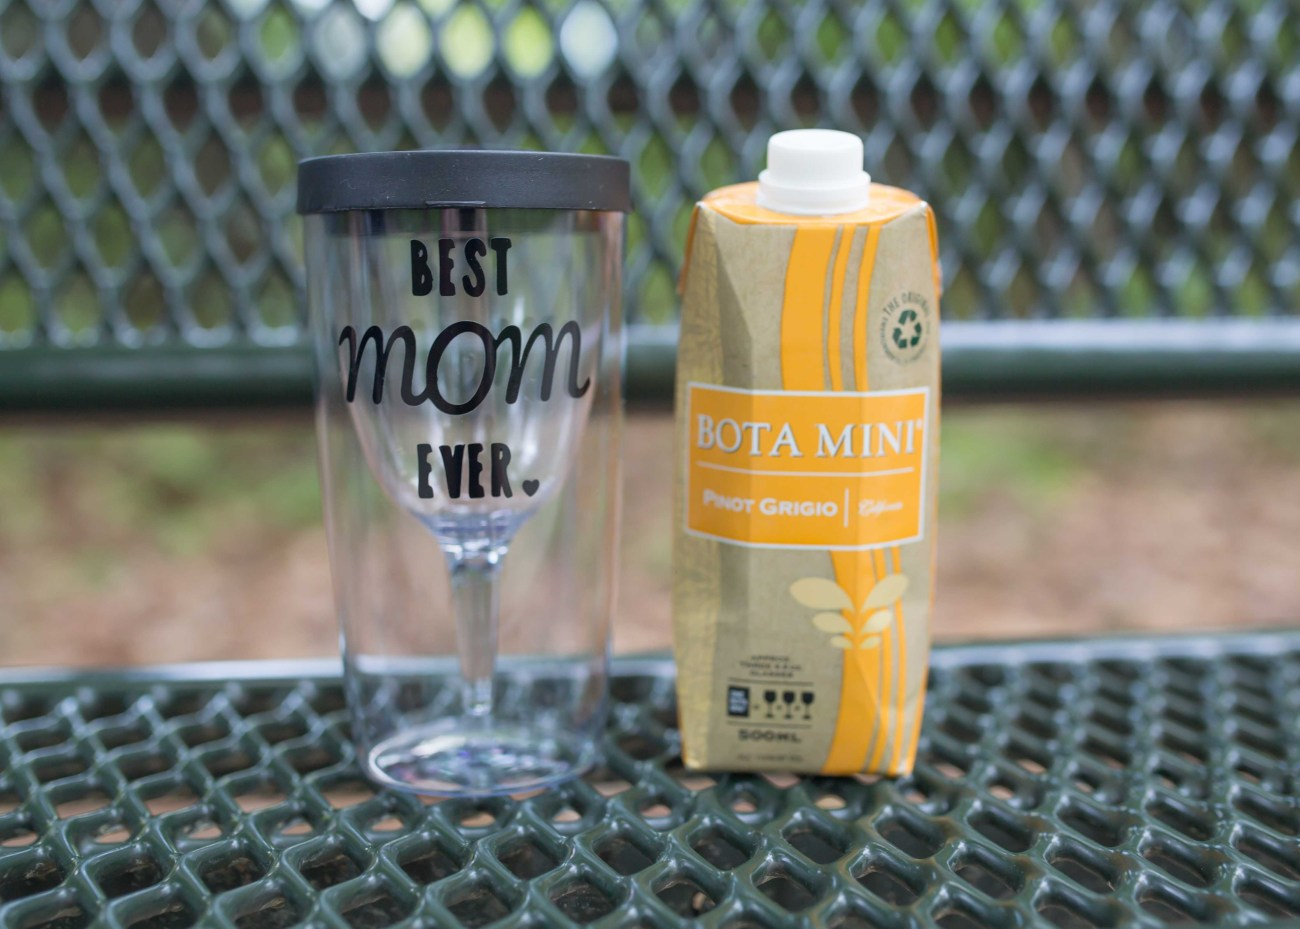 My Real Mother's Day Wish List: 5 Mothers Day Gift Ideas by Atlanta Mommy blogger Casual Claire